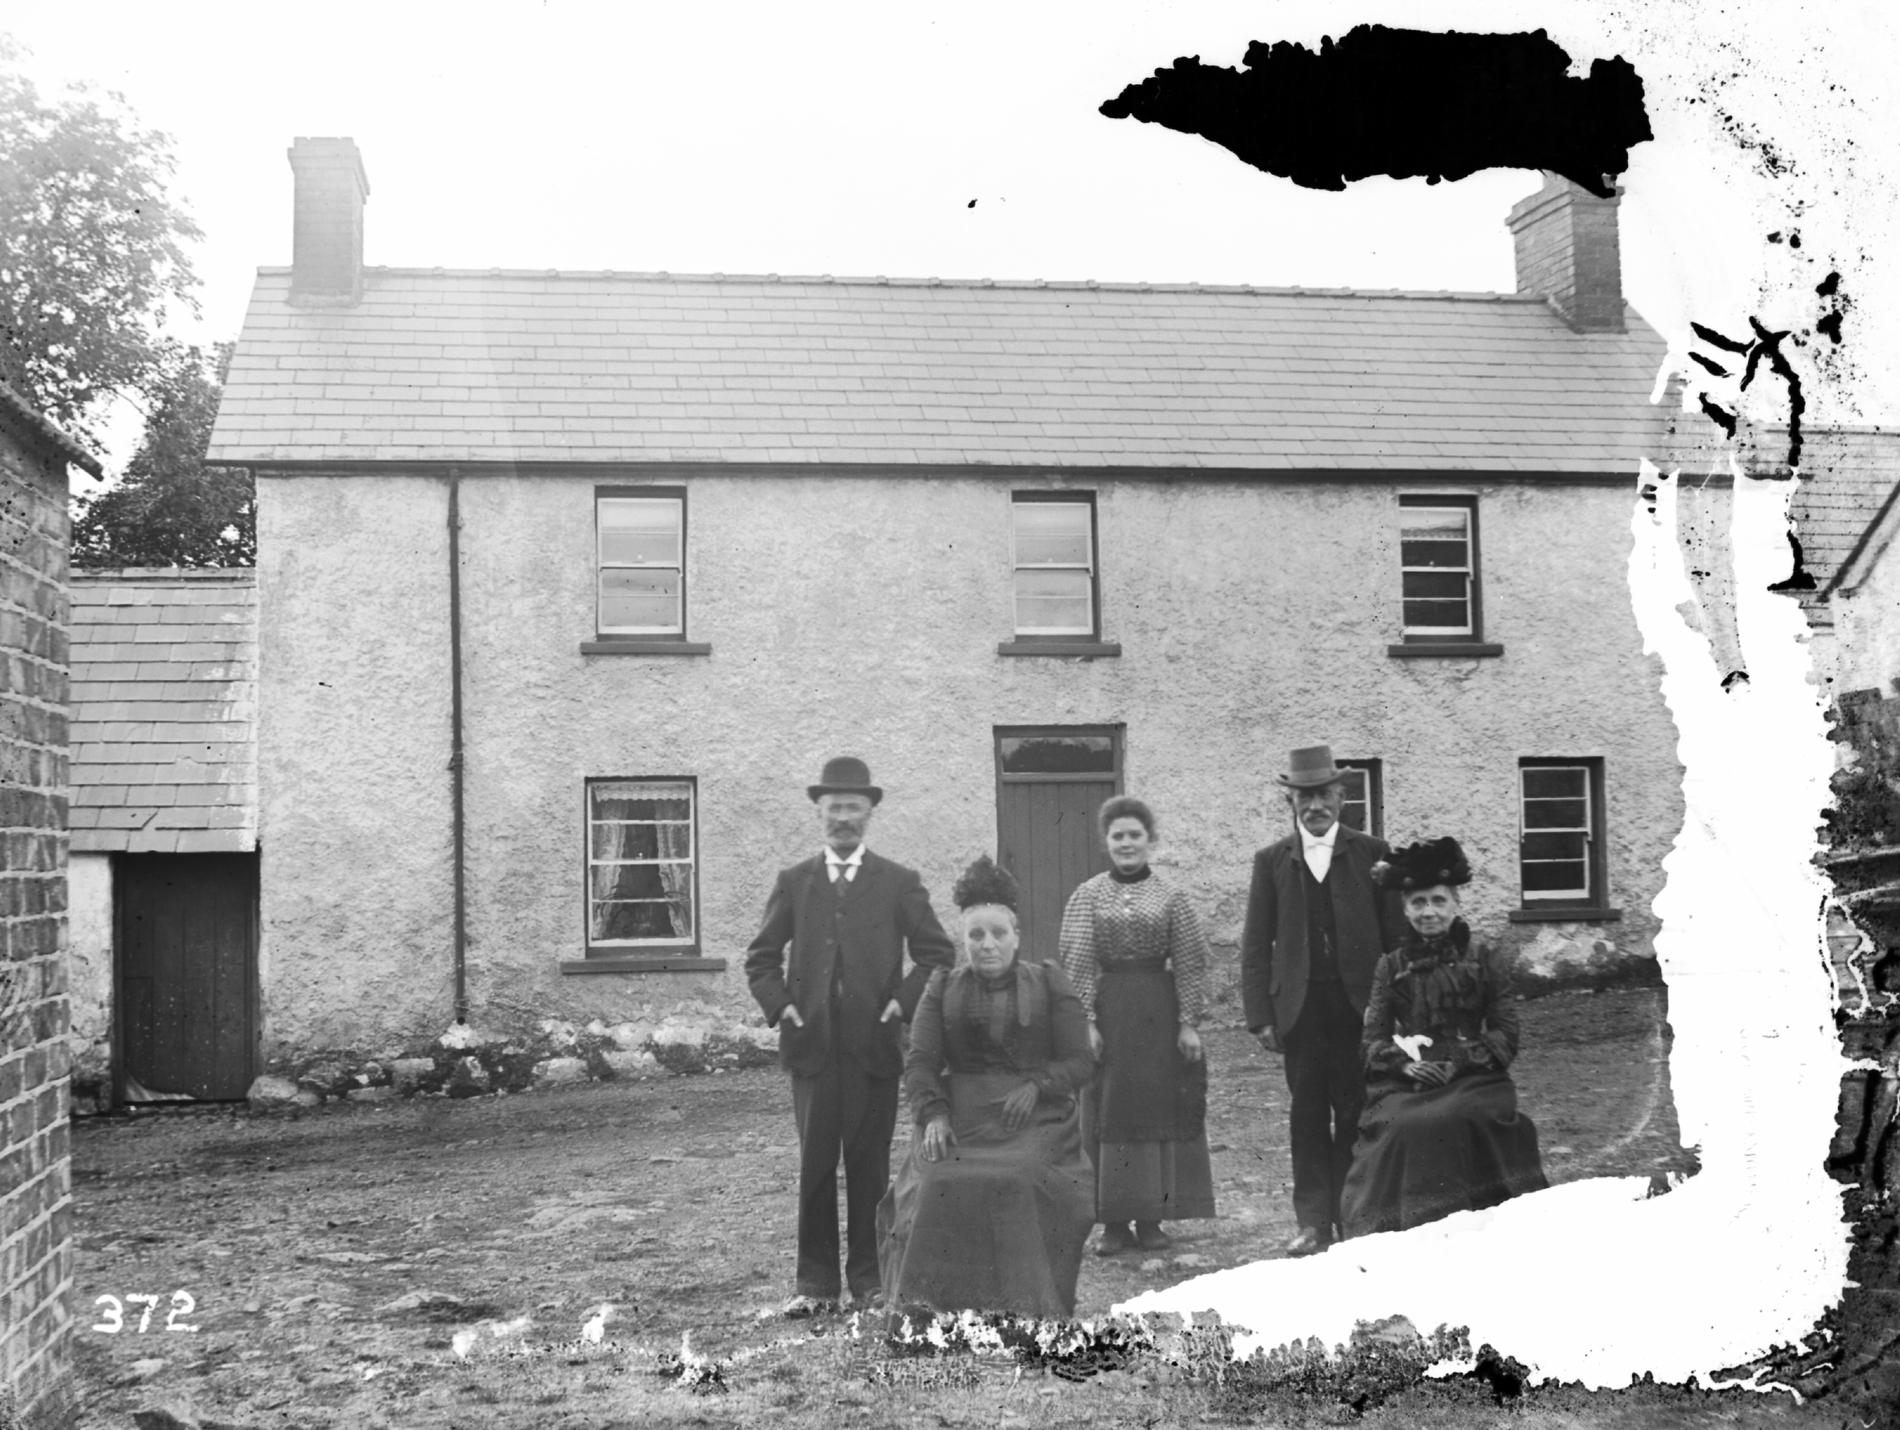 Mr & Mrs Gordon Wilson's house and group (photograph; glass plate negative)